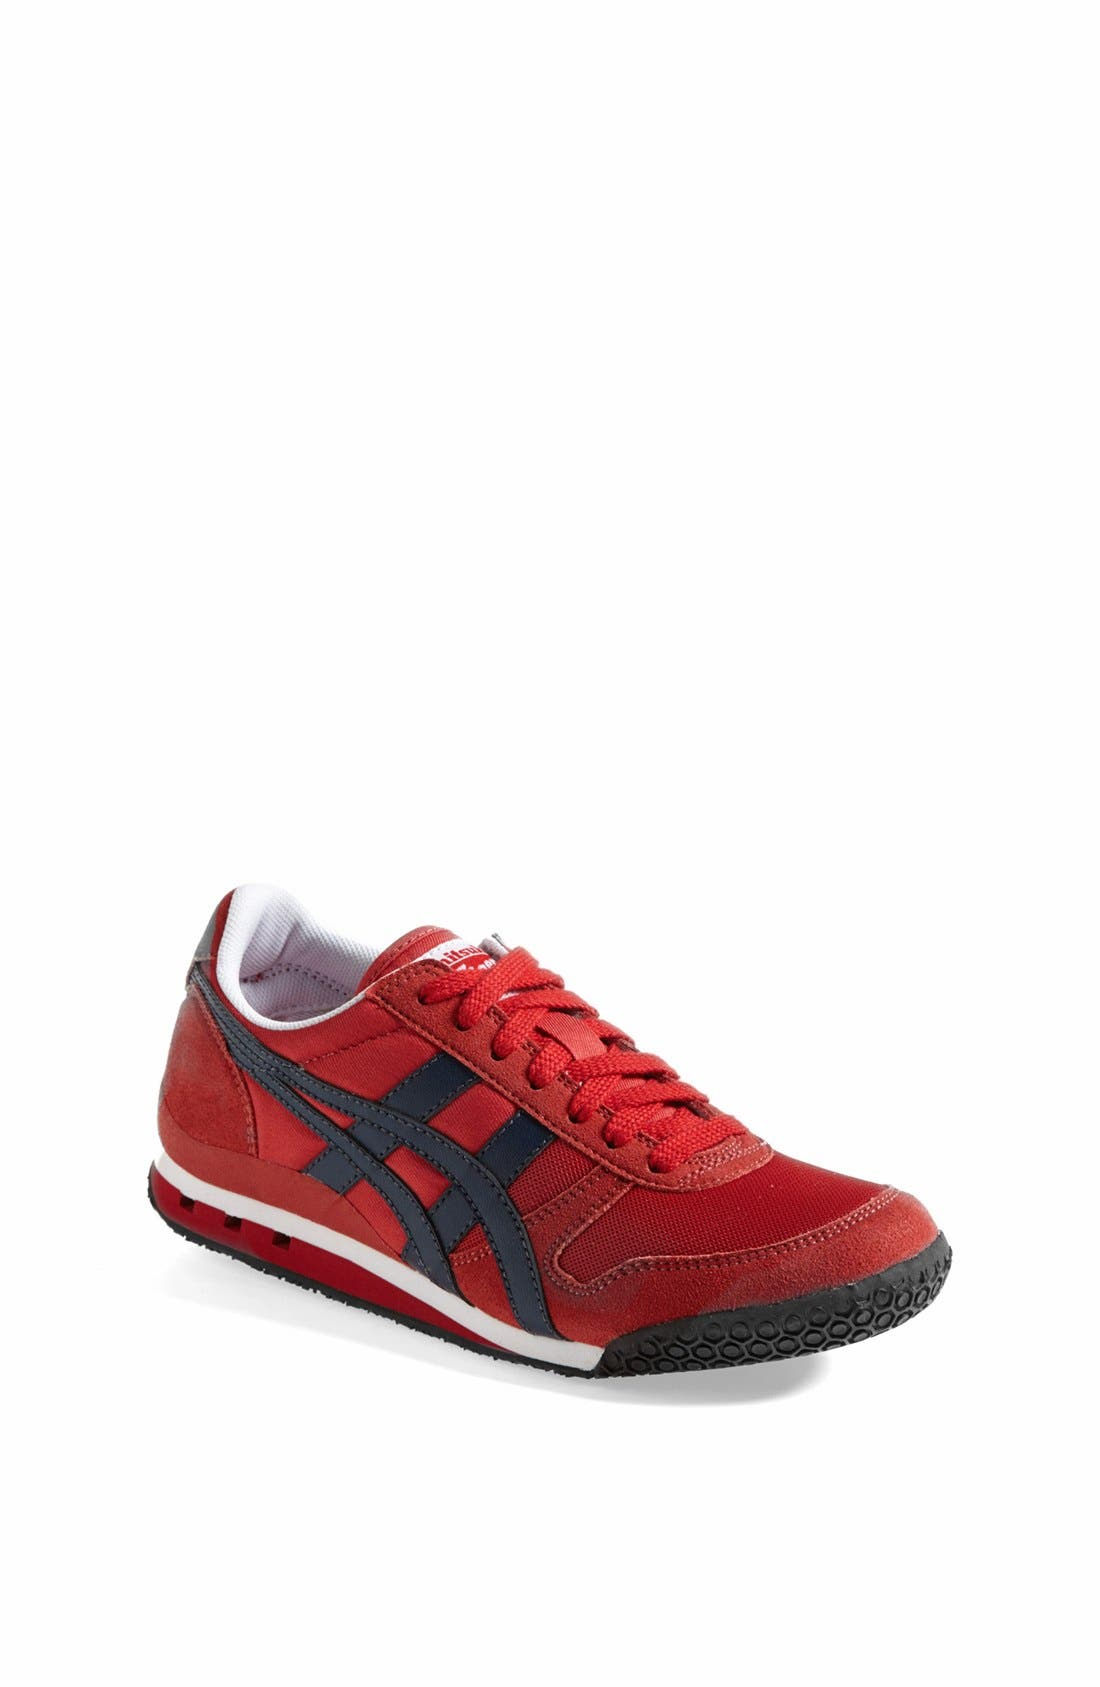 Alternate Image 1 Selected - Onitsuka Tiger™ 'Ultimate 81' Sneaker (Toddler, Little Kid & Big Kid)